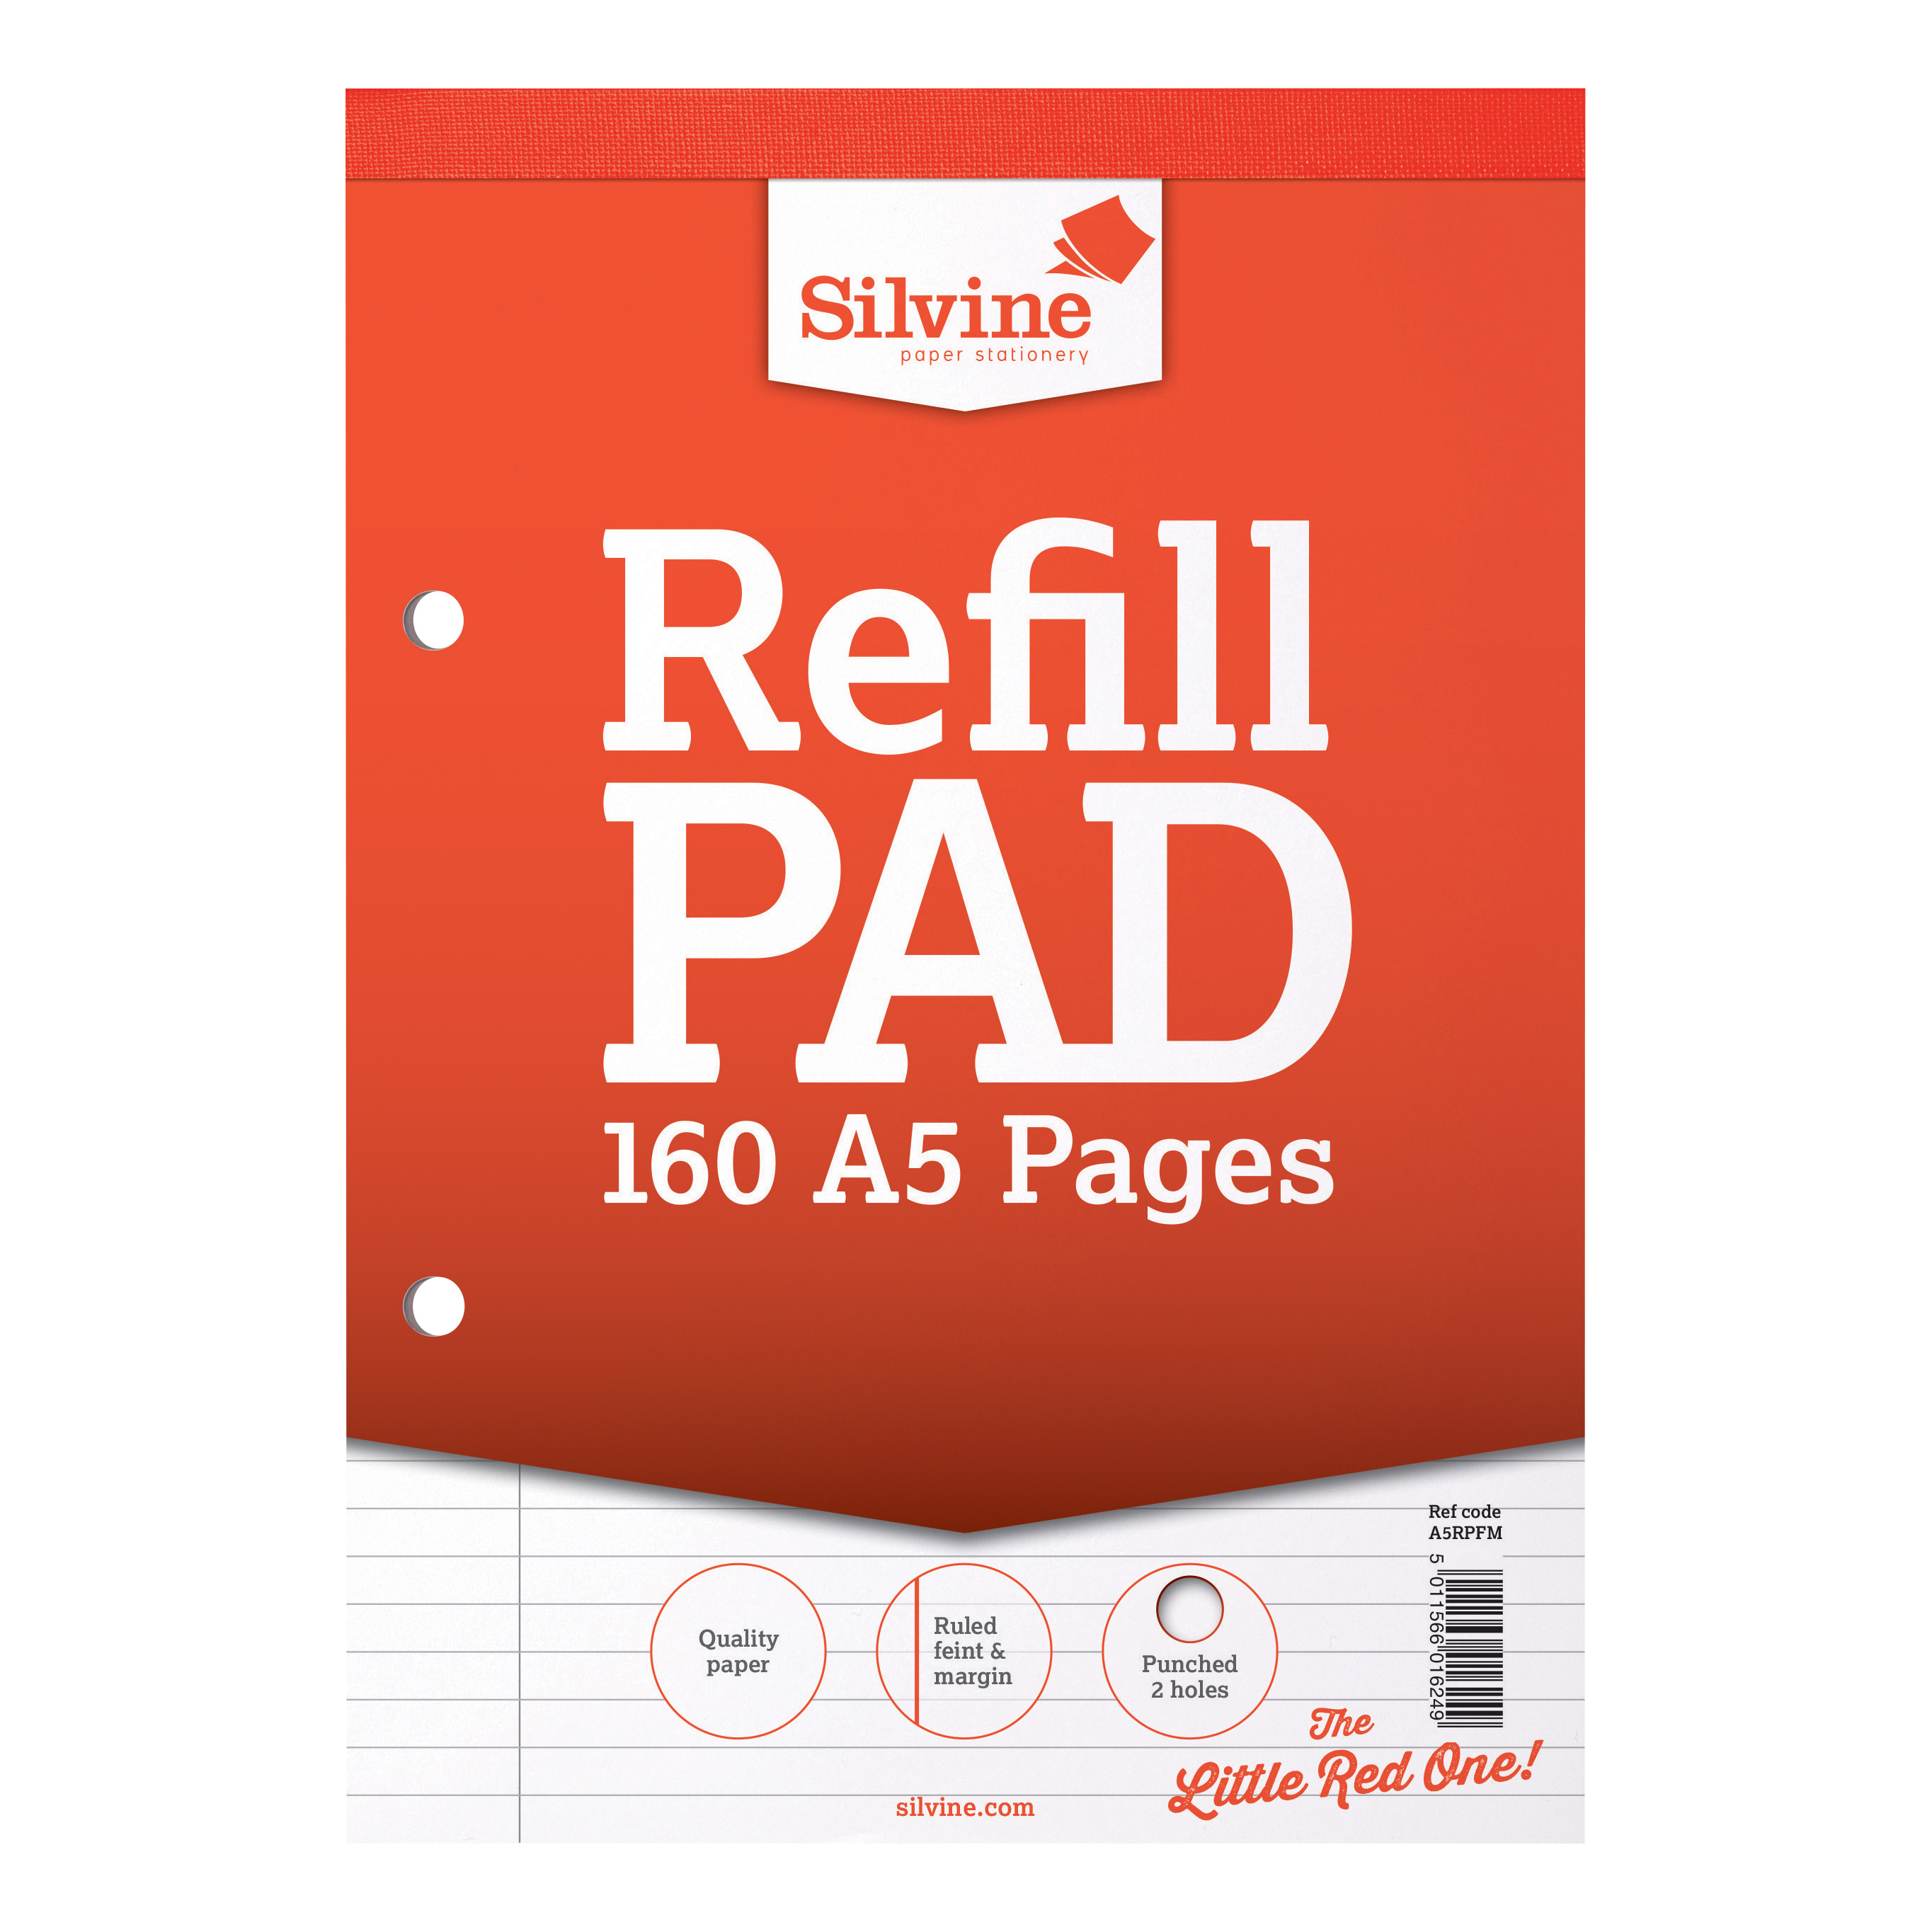 Refill Pads Silvine Refill Pad Headbound 75gsm Ruled Margin Perf Punched 2 Holes 160pp A5 Red Ref A5RPFM Pack 6